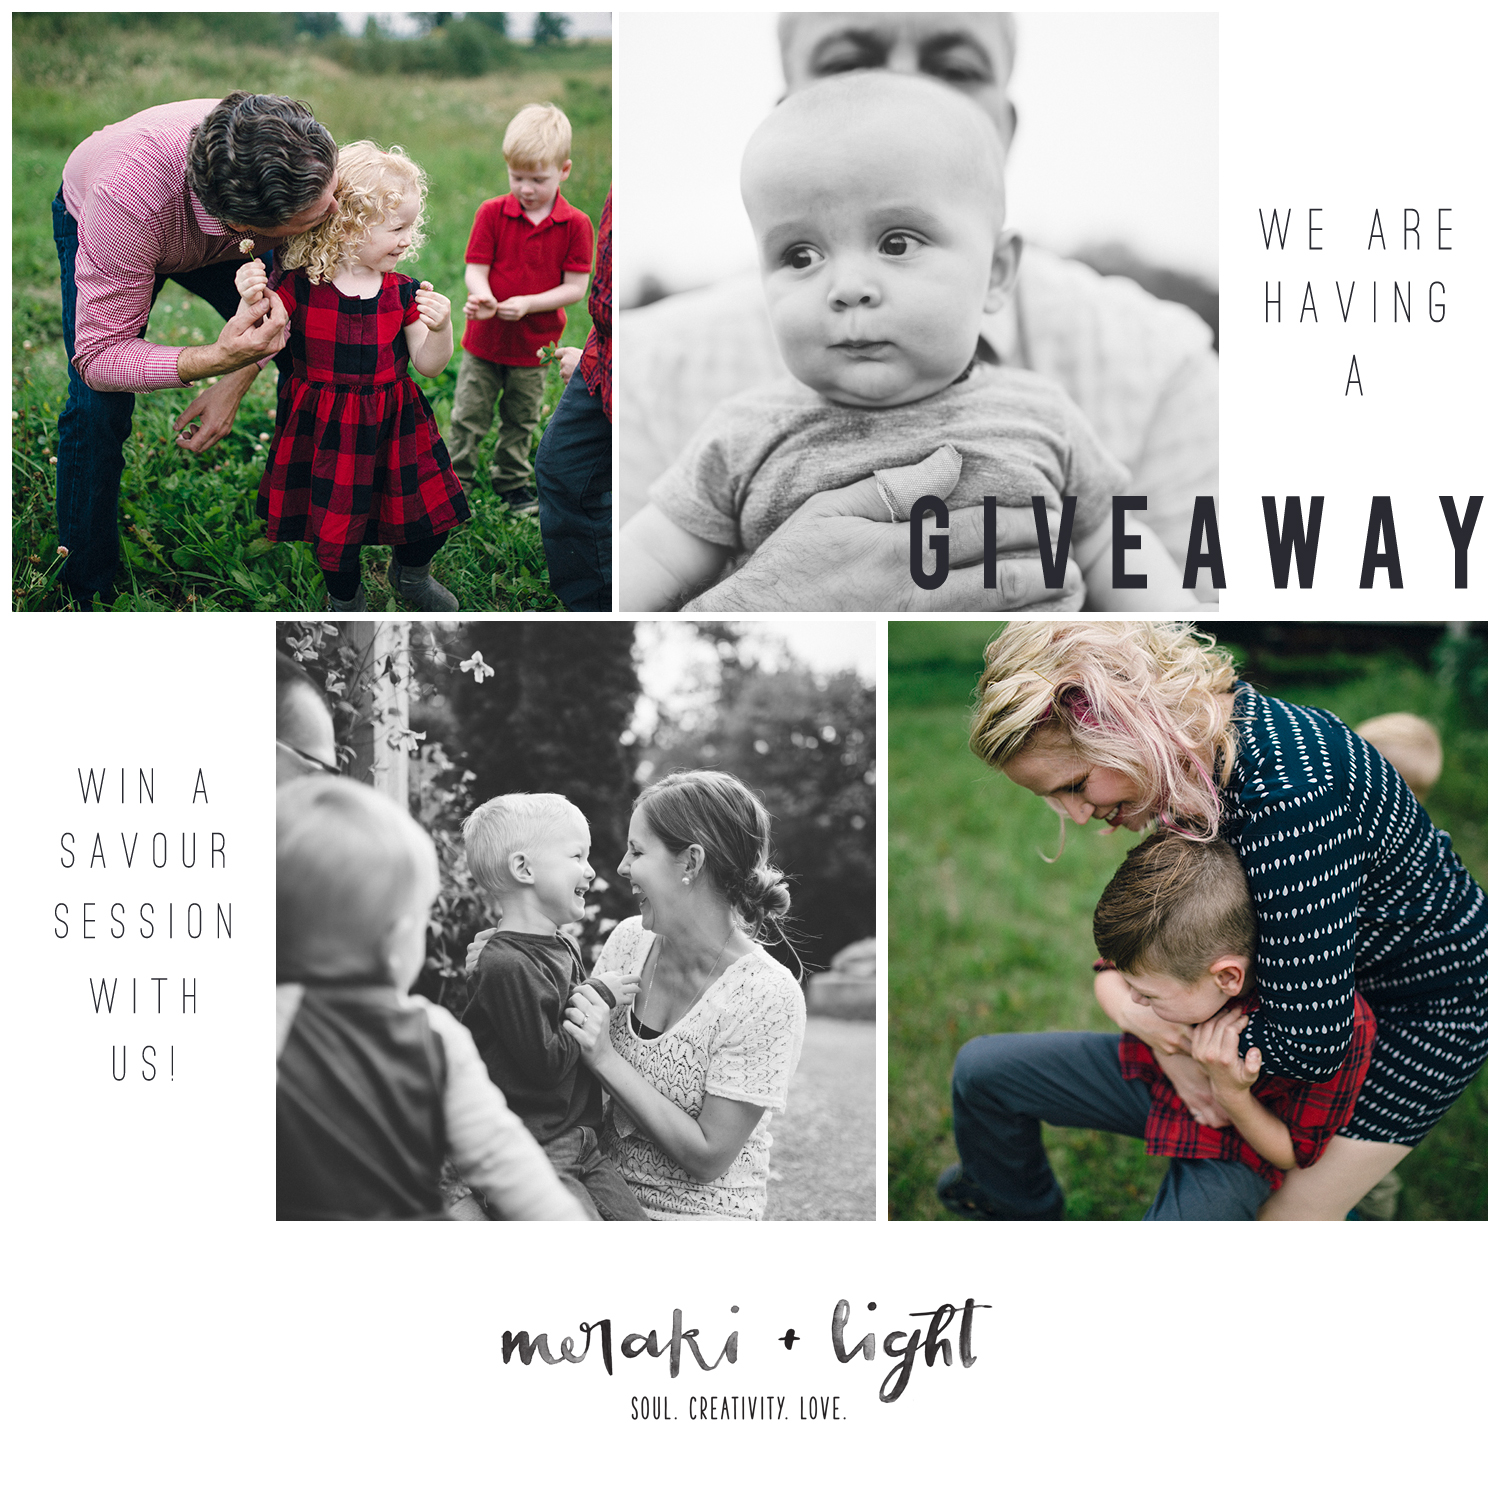 Have you heard?! Meraki + Light is having a GIVEAWAY! And it's really, truly amazing and worth over $2000.00 and 6 - 12 hours worth of session time! If you don't know the heart of our sessions yet, please visit our homepage!   We so value documenting families, and sharing your story, that we want you to experience it for yourself! So we want you to have a chance to win a savour session! We are only giving away ONE.   So how does it work?  Here's what you need to do! Go follow us on  Instagram (just click on that link ;)). Find the post with the image above. Like it,and tag a FRIEND whose family you think deserves to win one of these sessions. We will enter you AND your friend into our draw. Then email us at contact@merakiandlight.com with your story, and a bit about your friend you tagged and why they deserve a savour session. That's it! Can't wait to hear from you!  Contest entry deadline is September 12th.   PS. We don't mind travelling, but just ask that our travel expenses be fully covered.  Xoxo.  Tamarah + Tammy